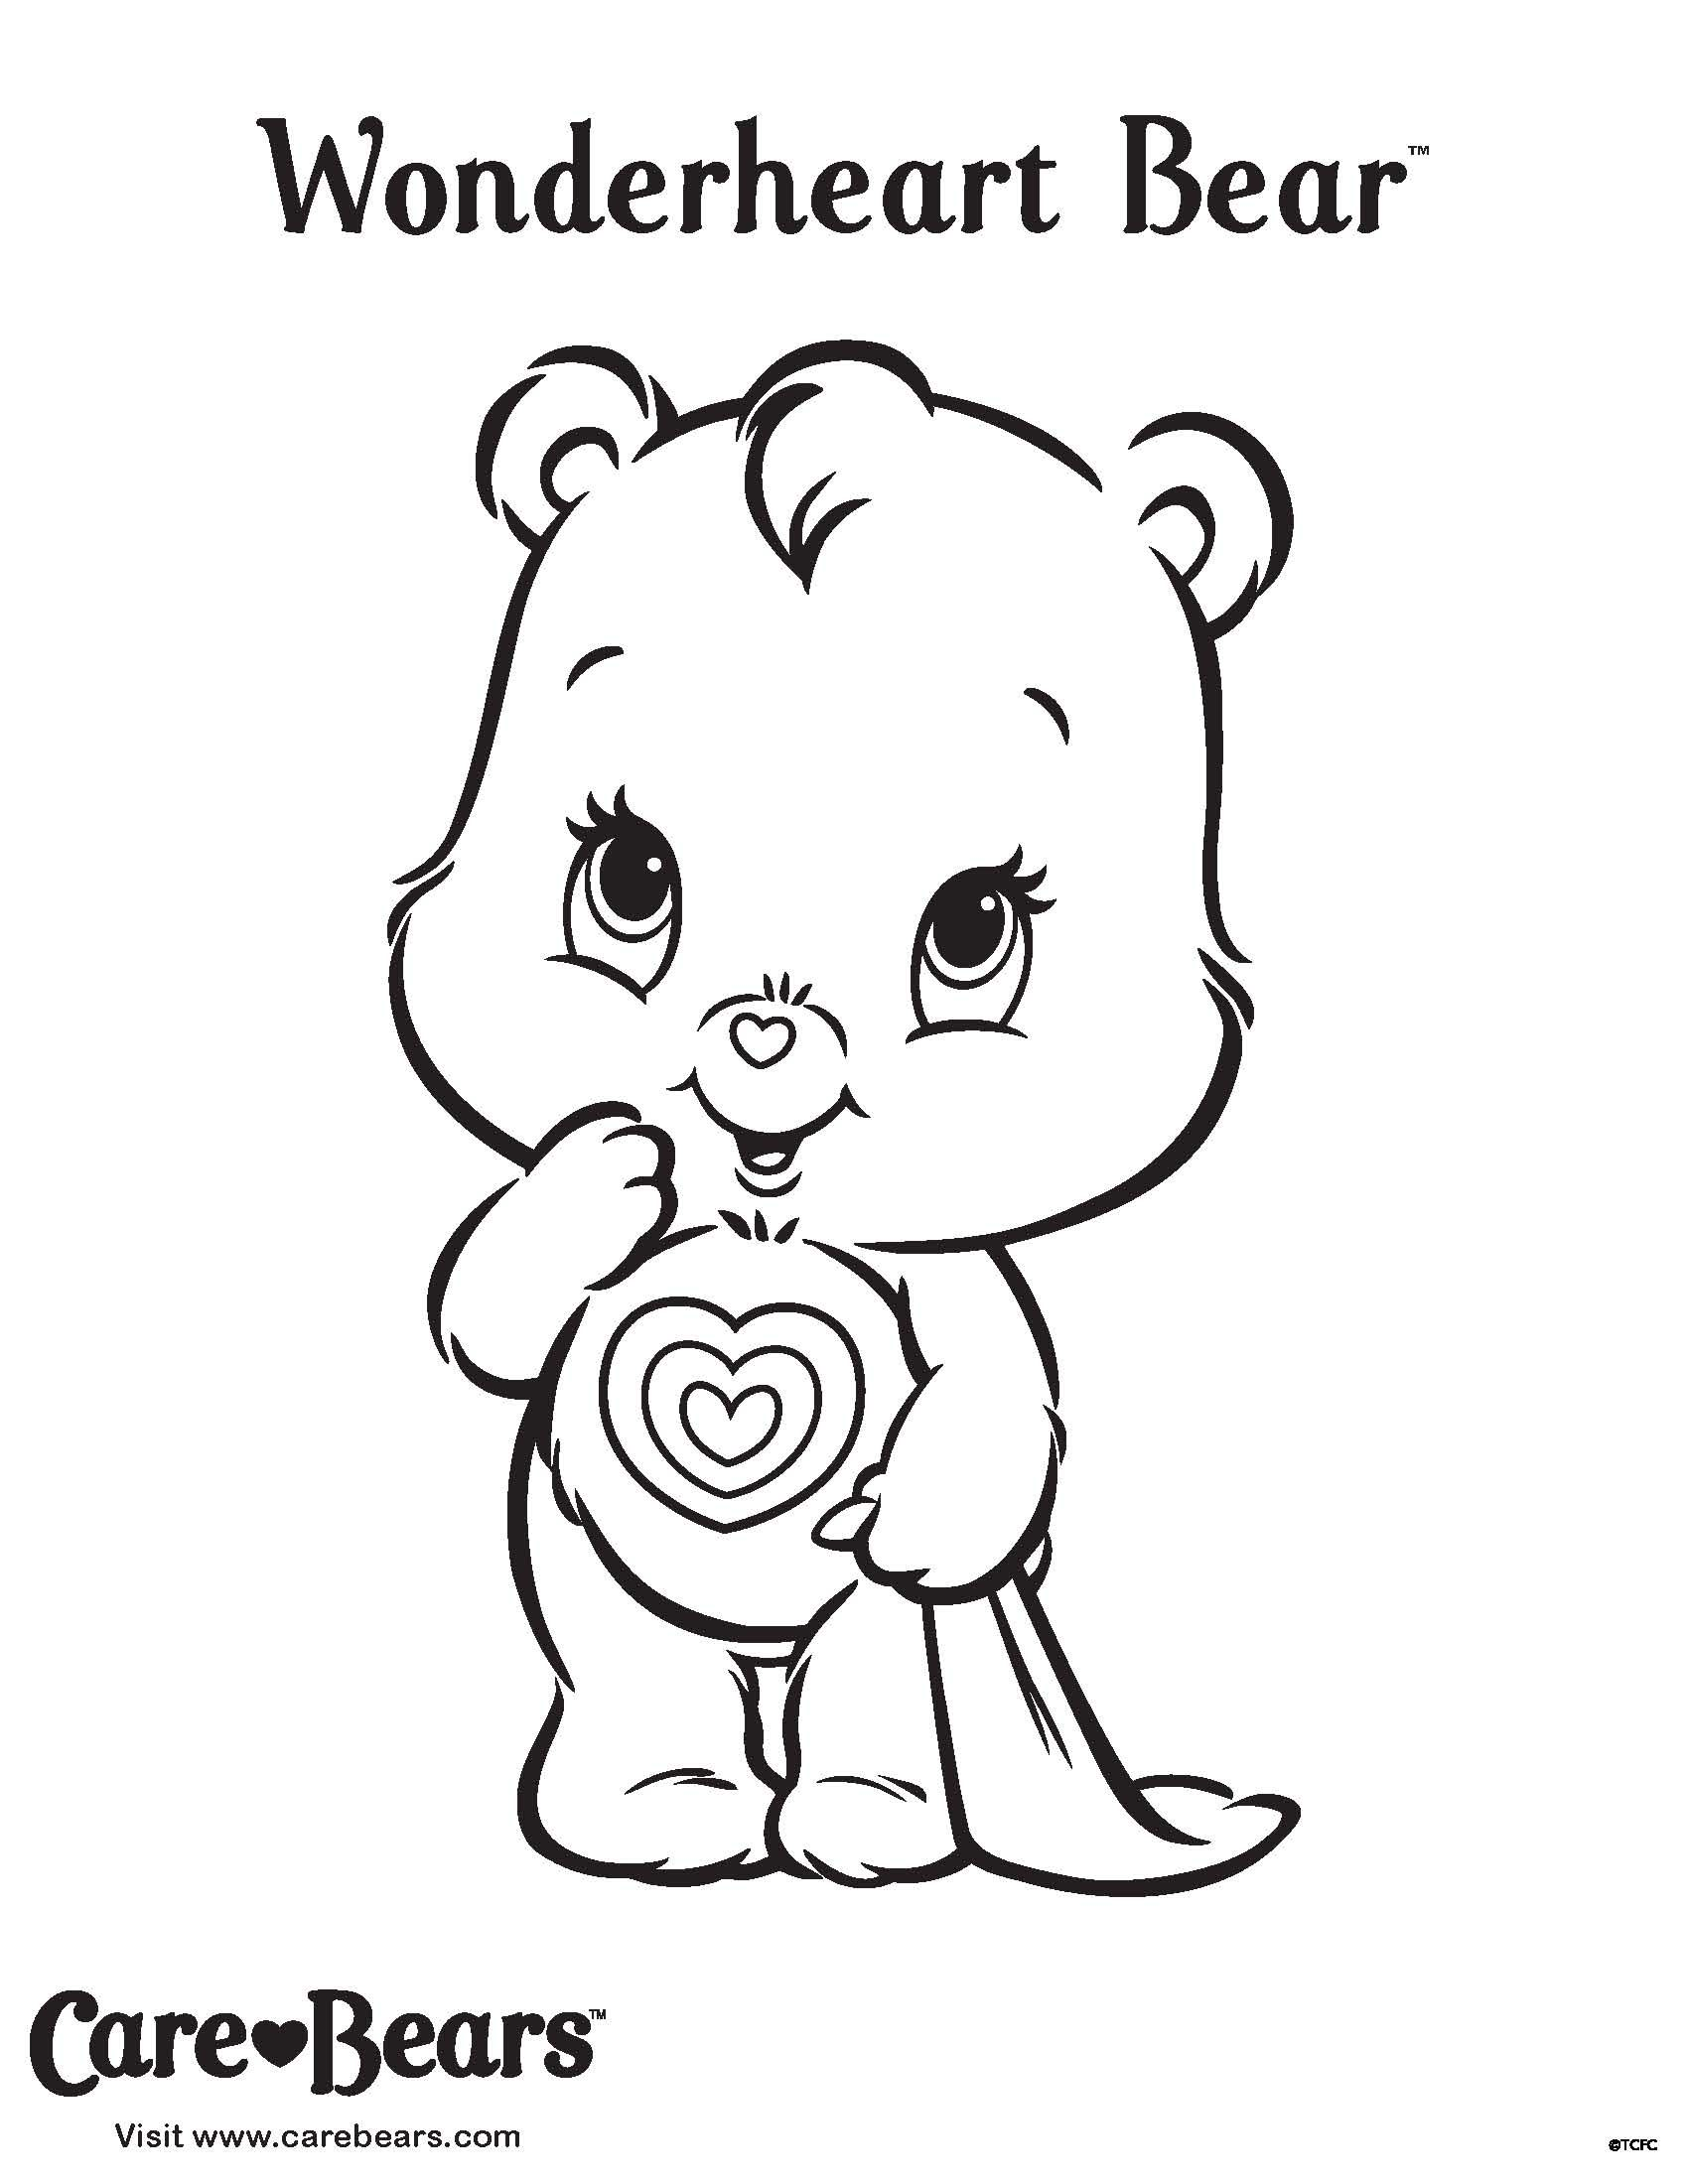 - What Is Wonderheart Wondering? Bear Coloring Pages, Care Bears